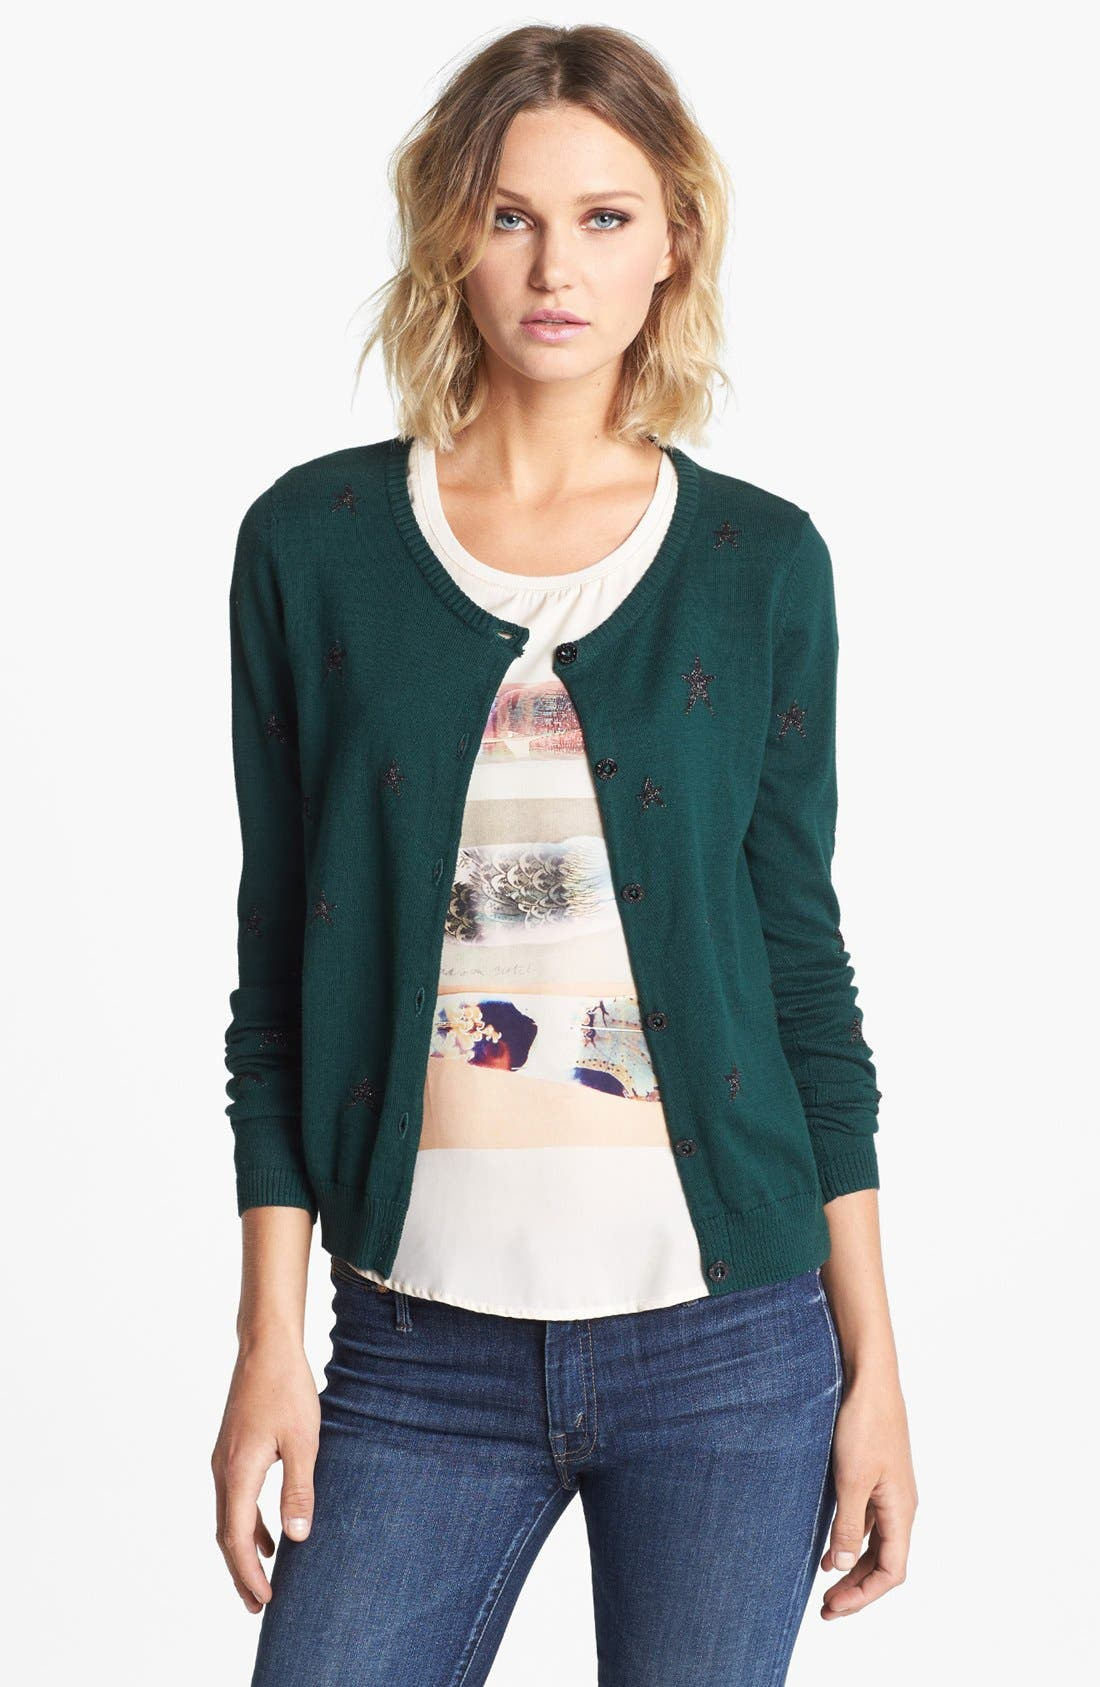 Alternate Image 1 Selected - Maison Scotch Star Pattern Knit Cardigan